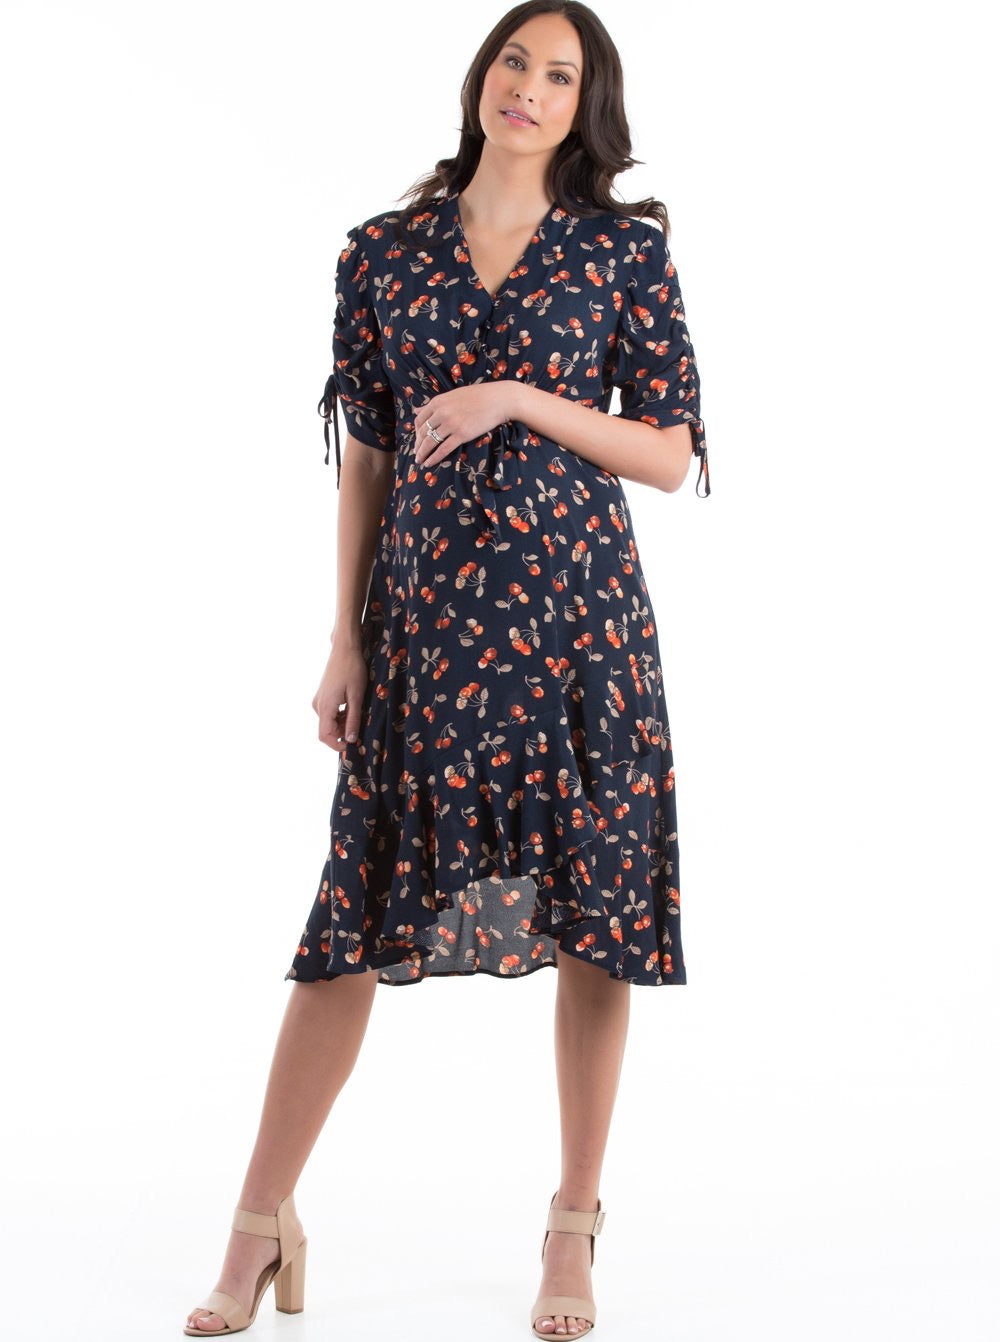 Angel Maternity 'Bella' Midi Dress in Navy Cherry Print